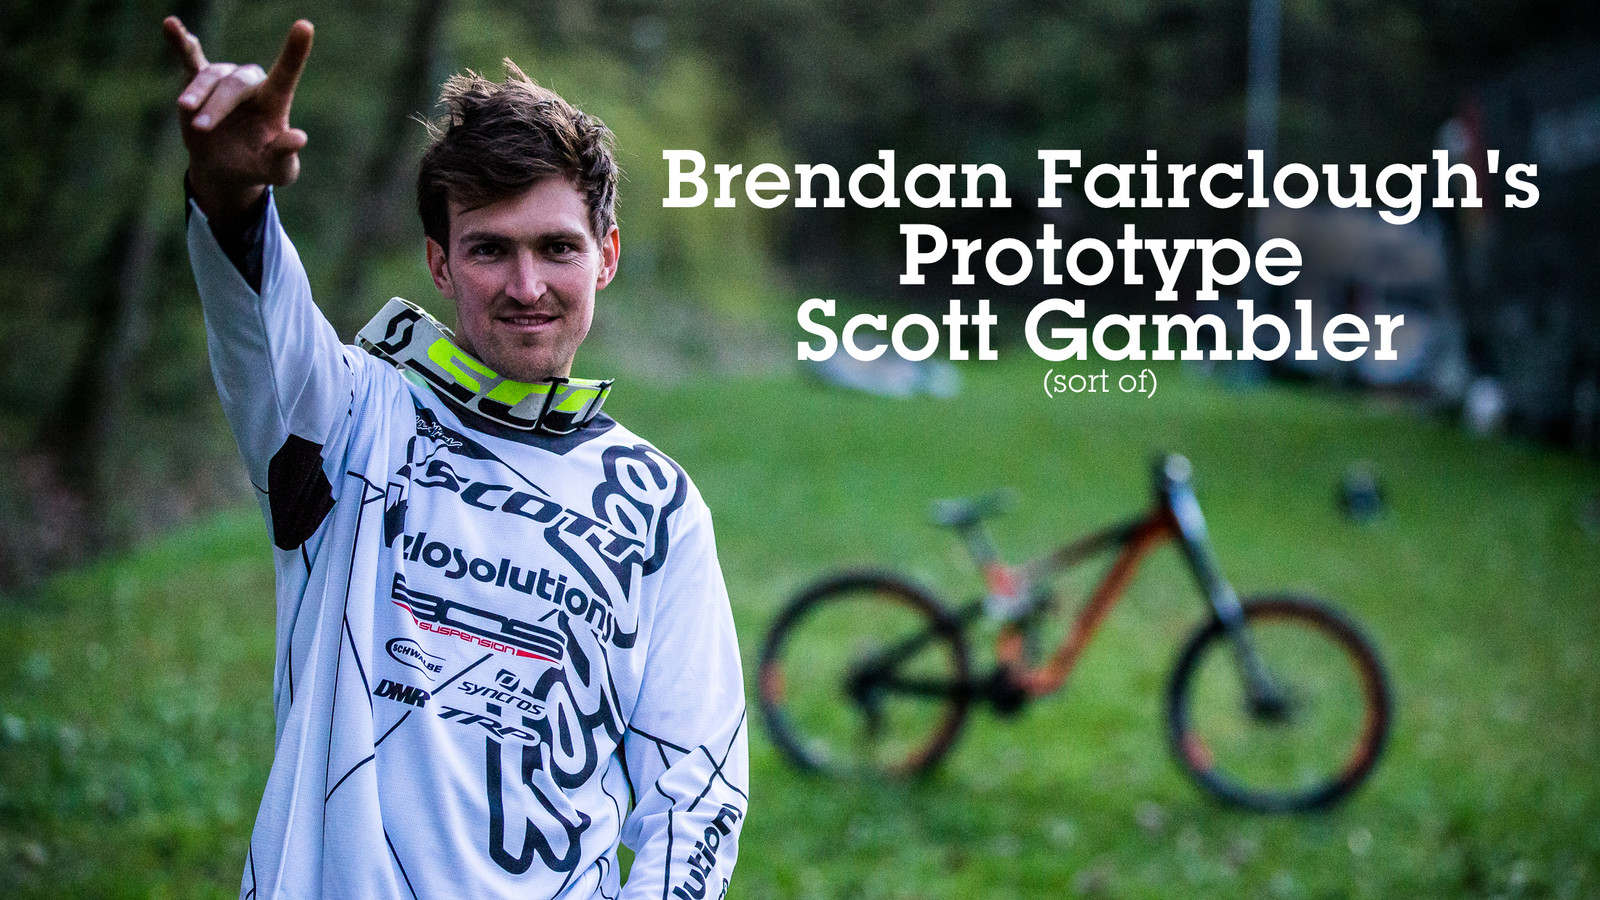 Brendan Fairclough's Prototype Scott Gambler